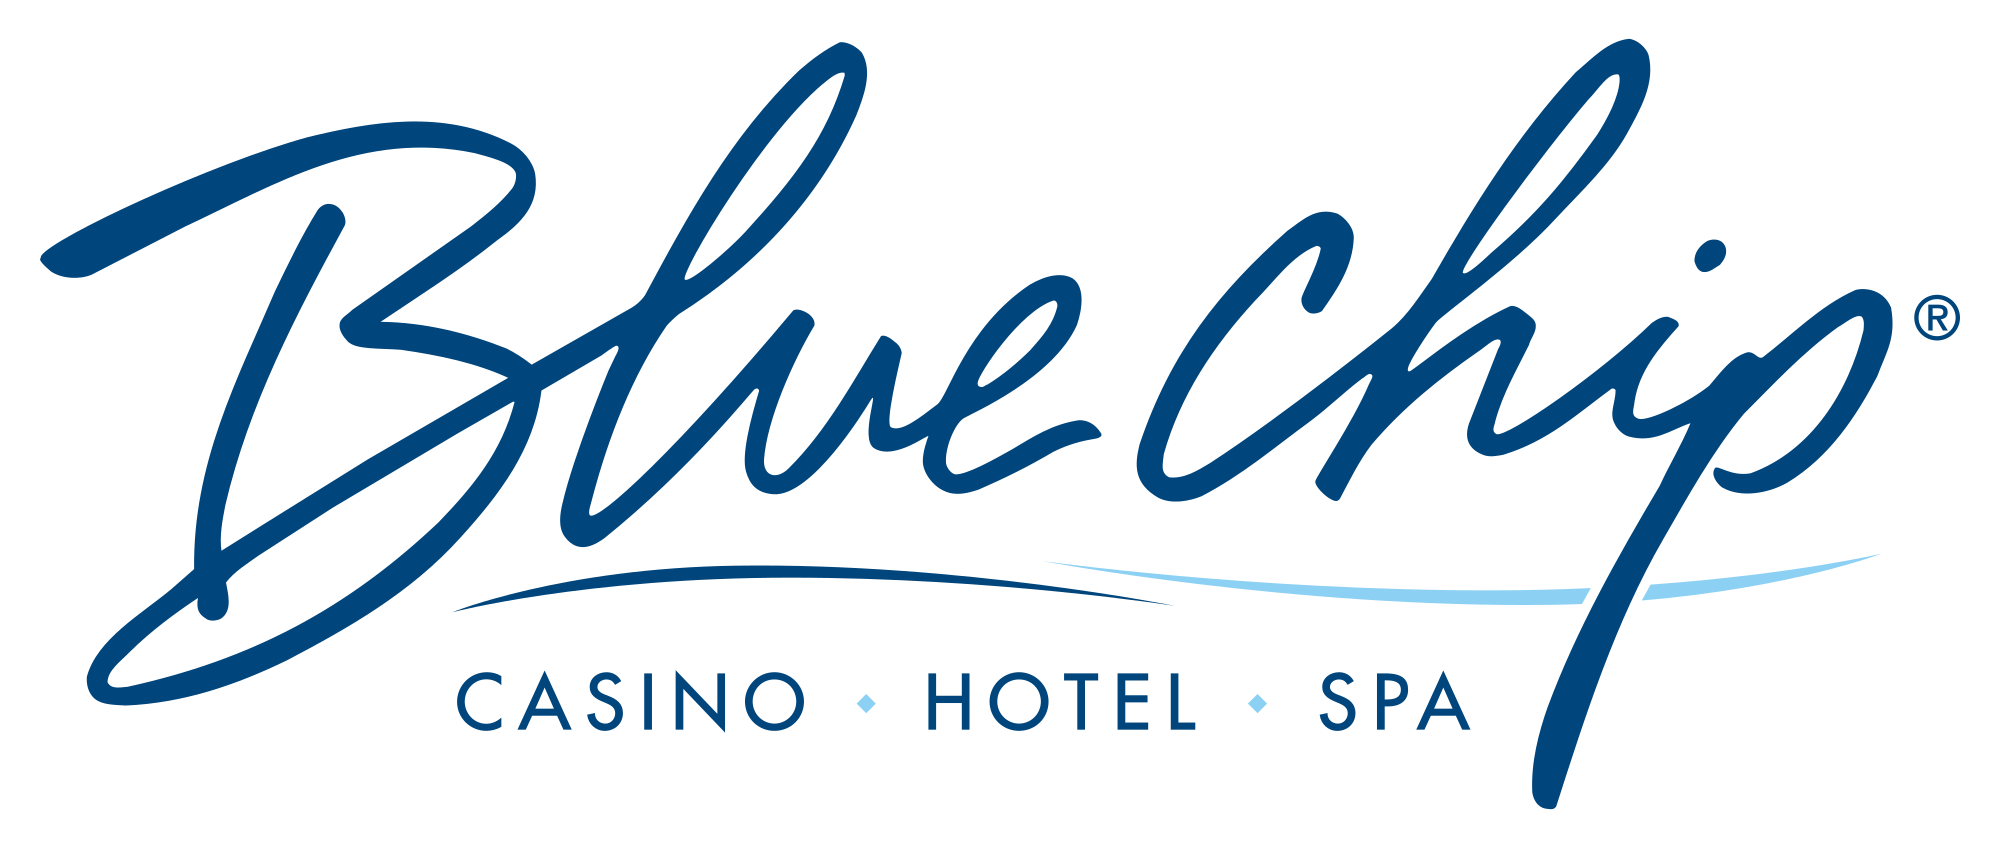 Blue Chip Casino–Michigan City, IN